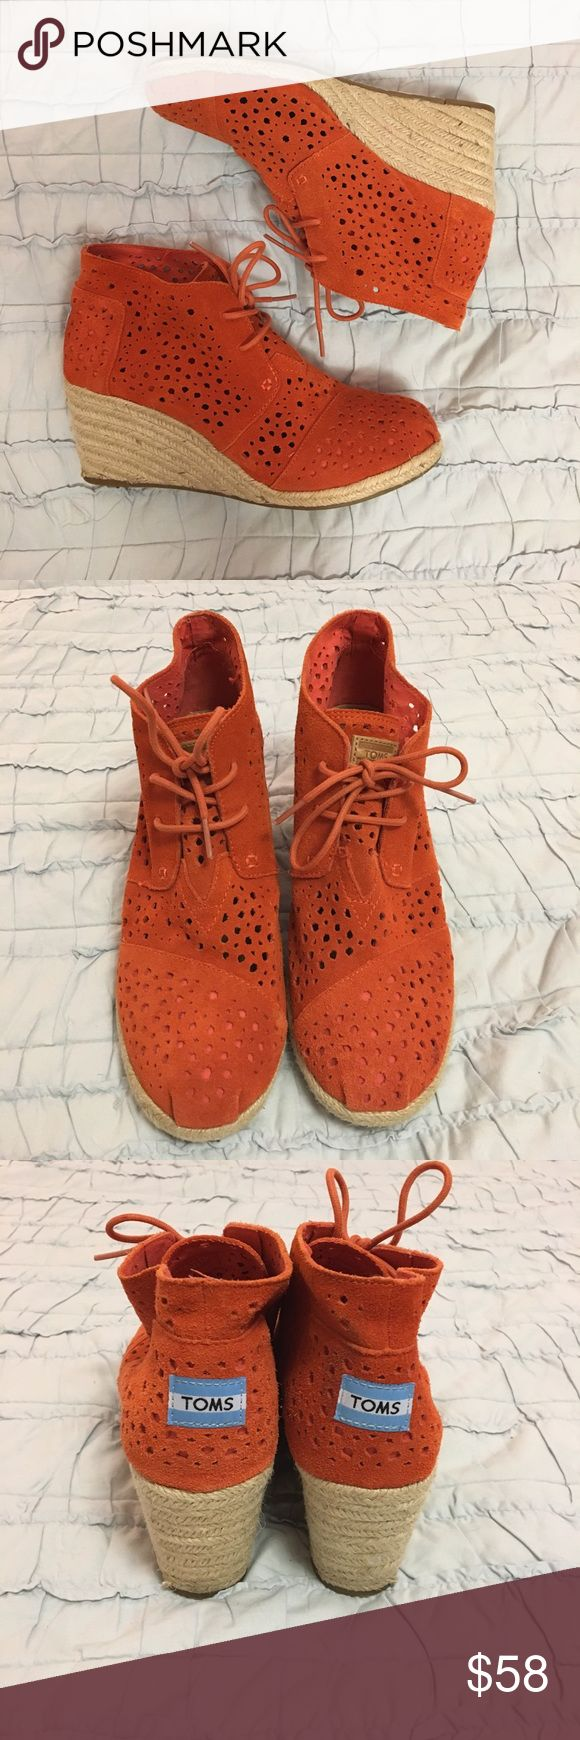 """TOMS Moroccan Cutout Espadrille Wedge Orange suede cut out bootie wedges. Perforated suede upper with tonal topstitching. Ankle-high shaft; 2 3/4"""" braided jute wedge heel. Rubber and jute sole provides traction. Excellent condition. Worn once! Size 9. So comfortable!! TOMS Shoes Wedges"""